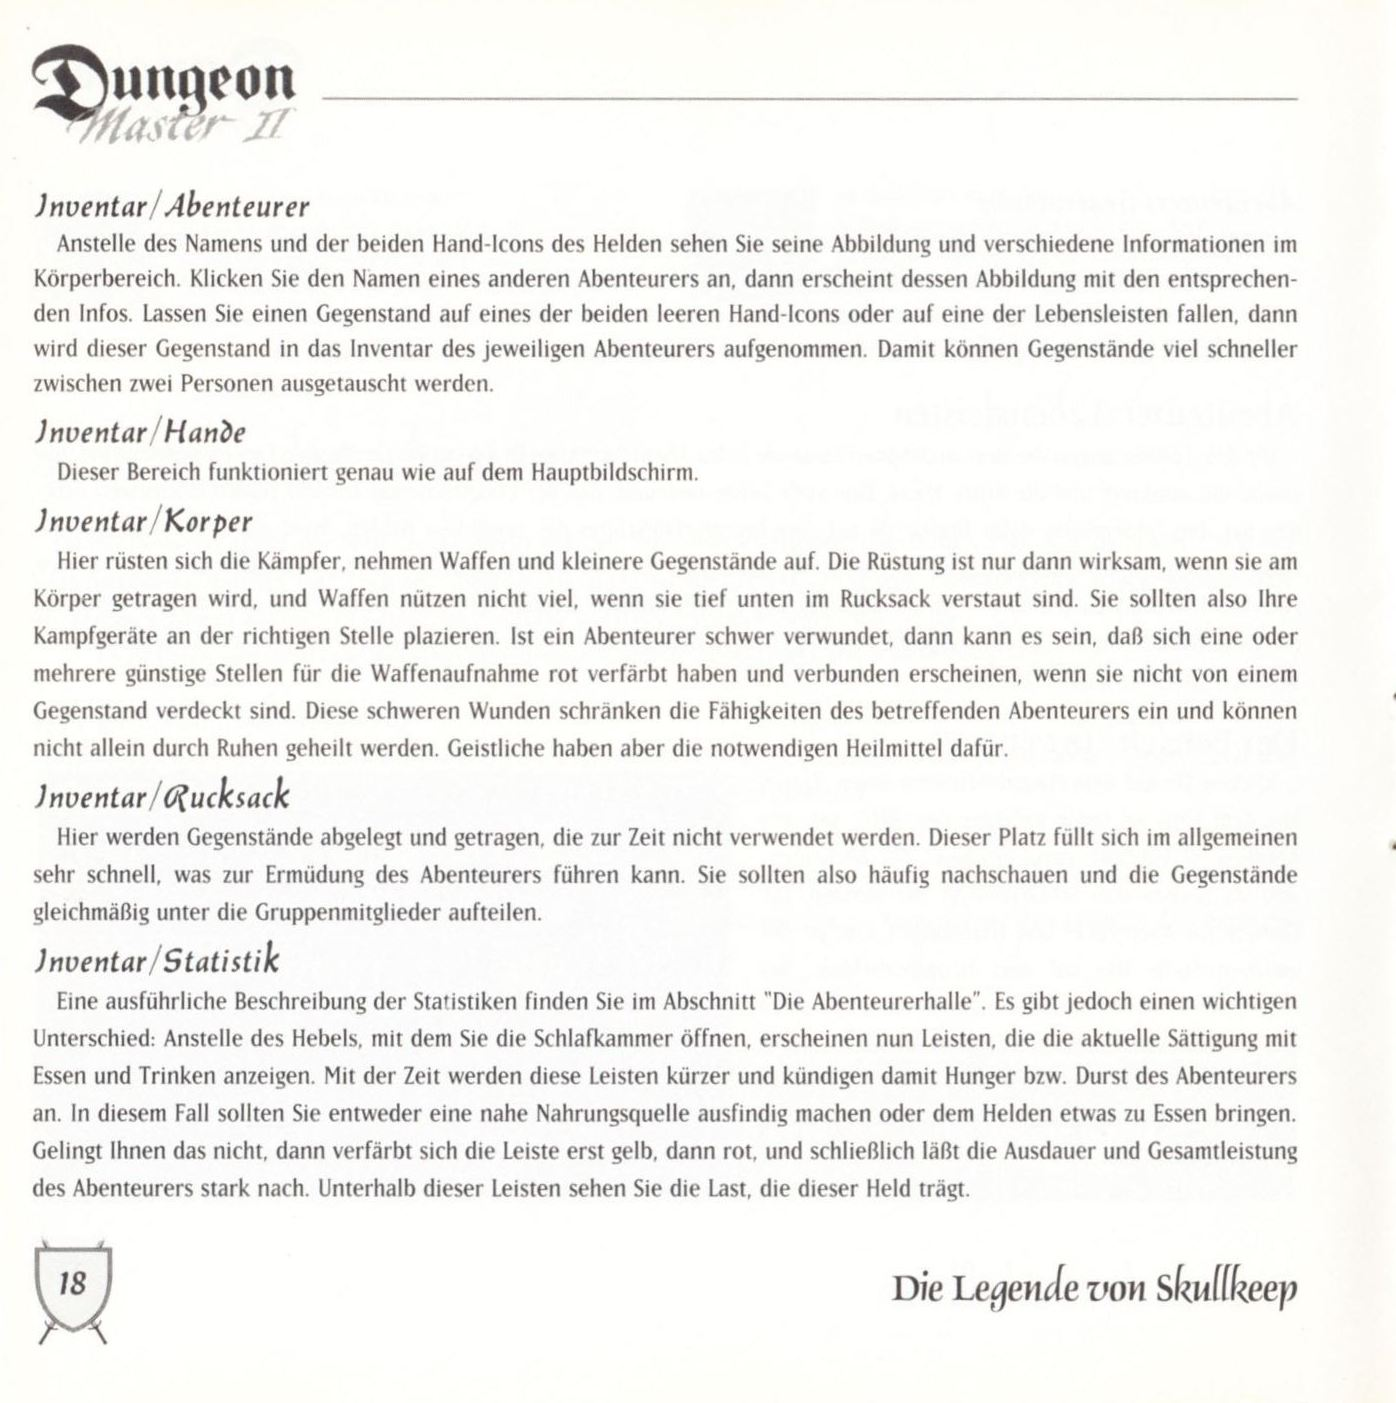 Game - Dungeon Master II - DE - PC - Blackmarket With Booklet - Booklet - Page 020 - Scan